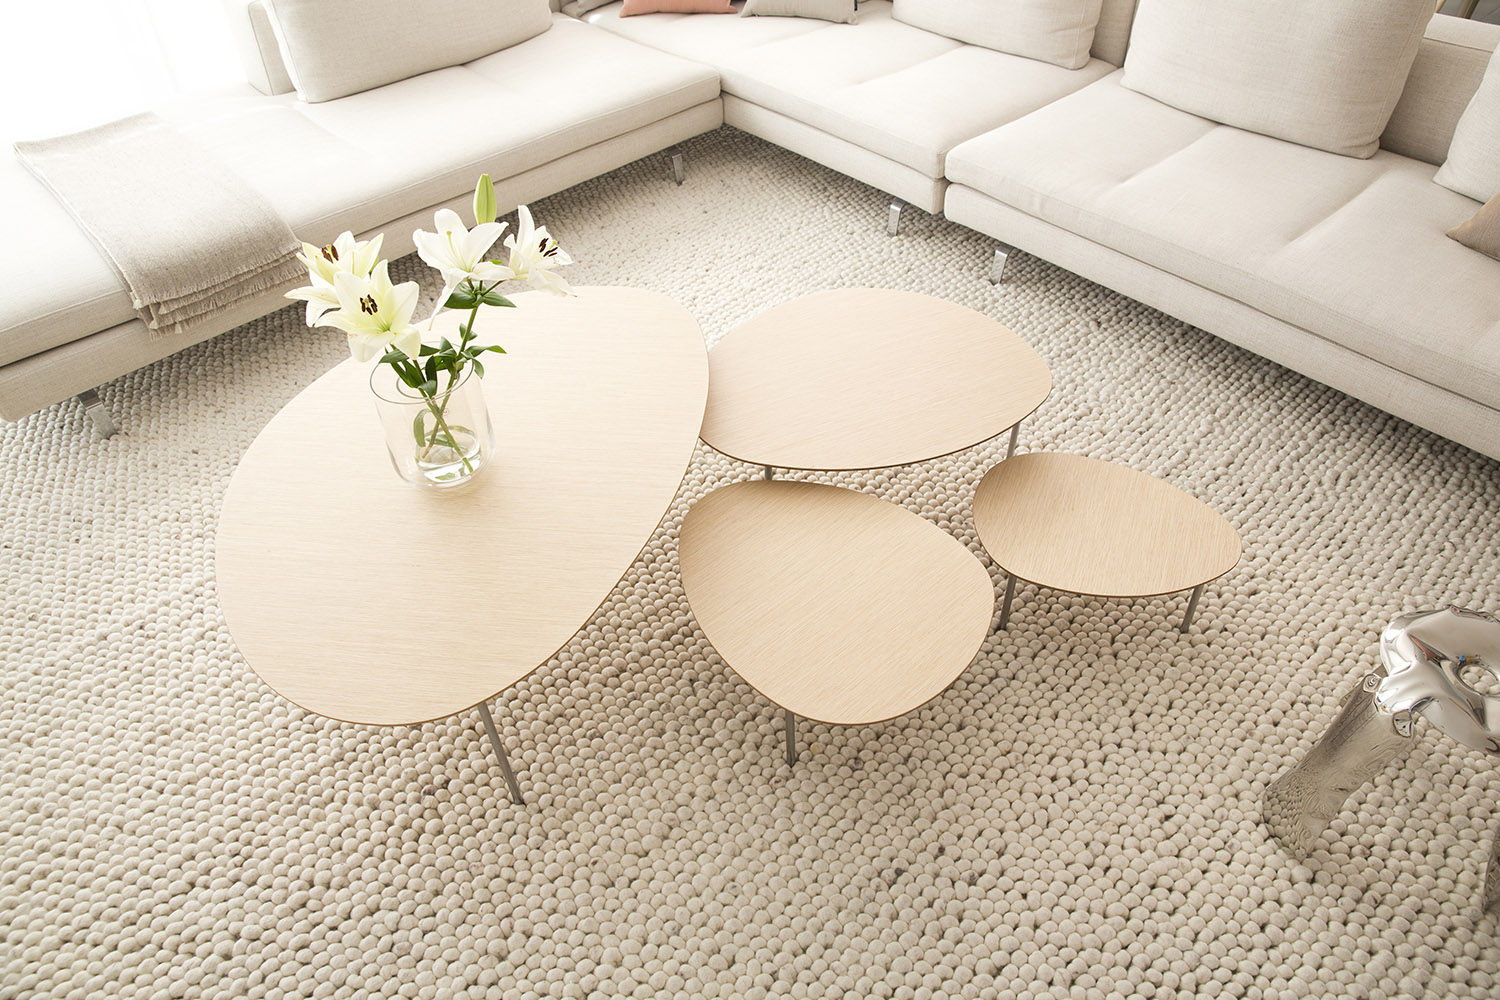 Classic Table Shapes Stua Eclipse Nesting Tables With Organic Shapes